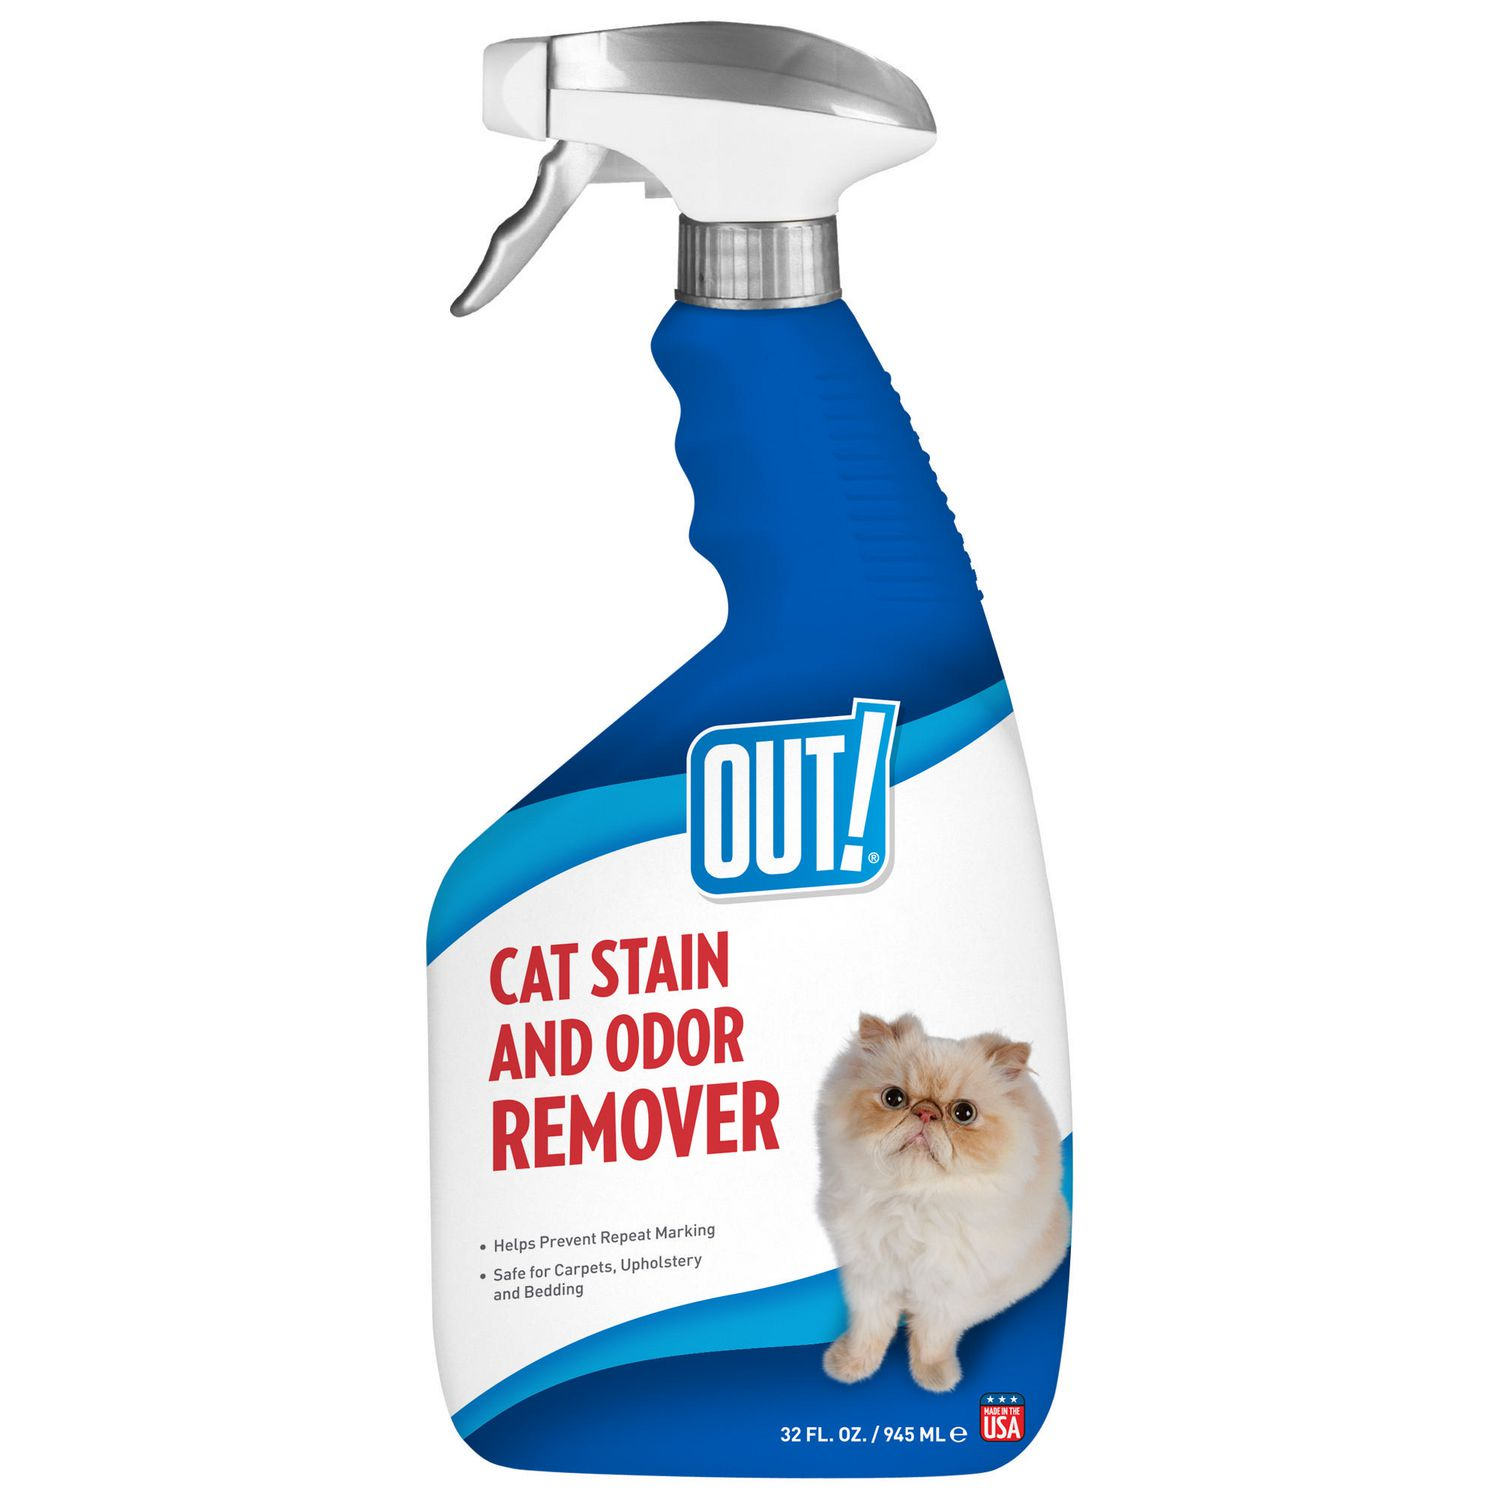 how headed for take for a ride domestic cat increase odour